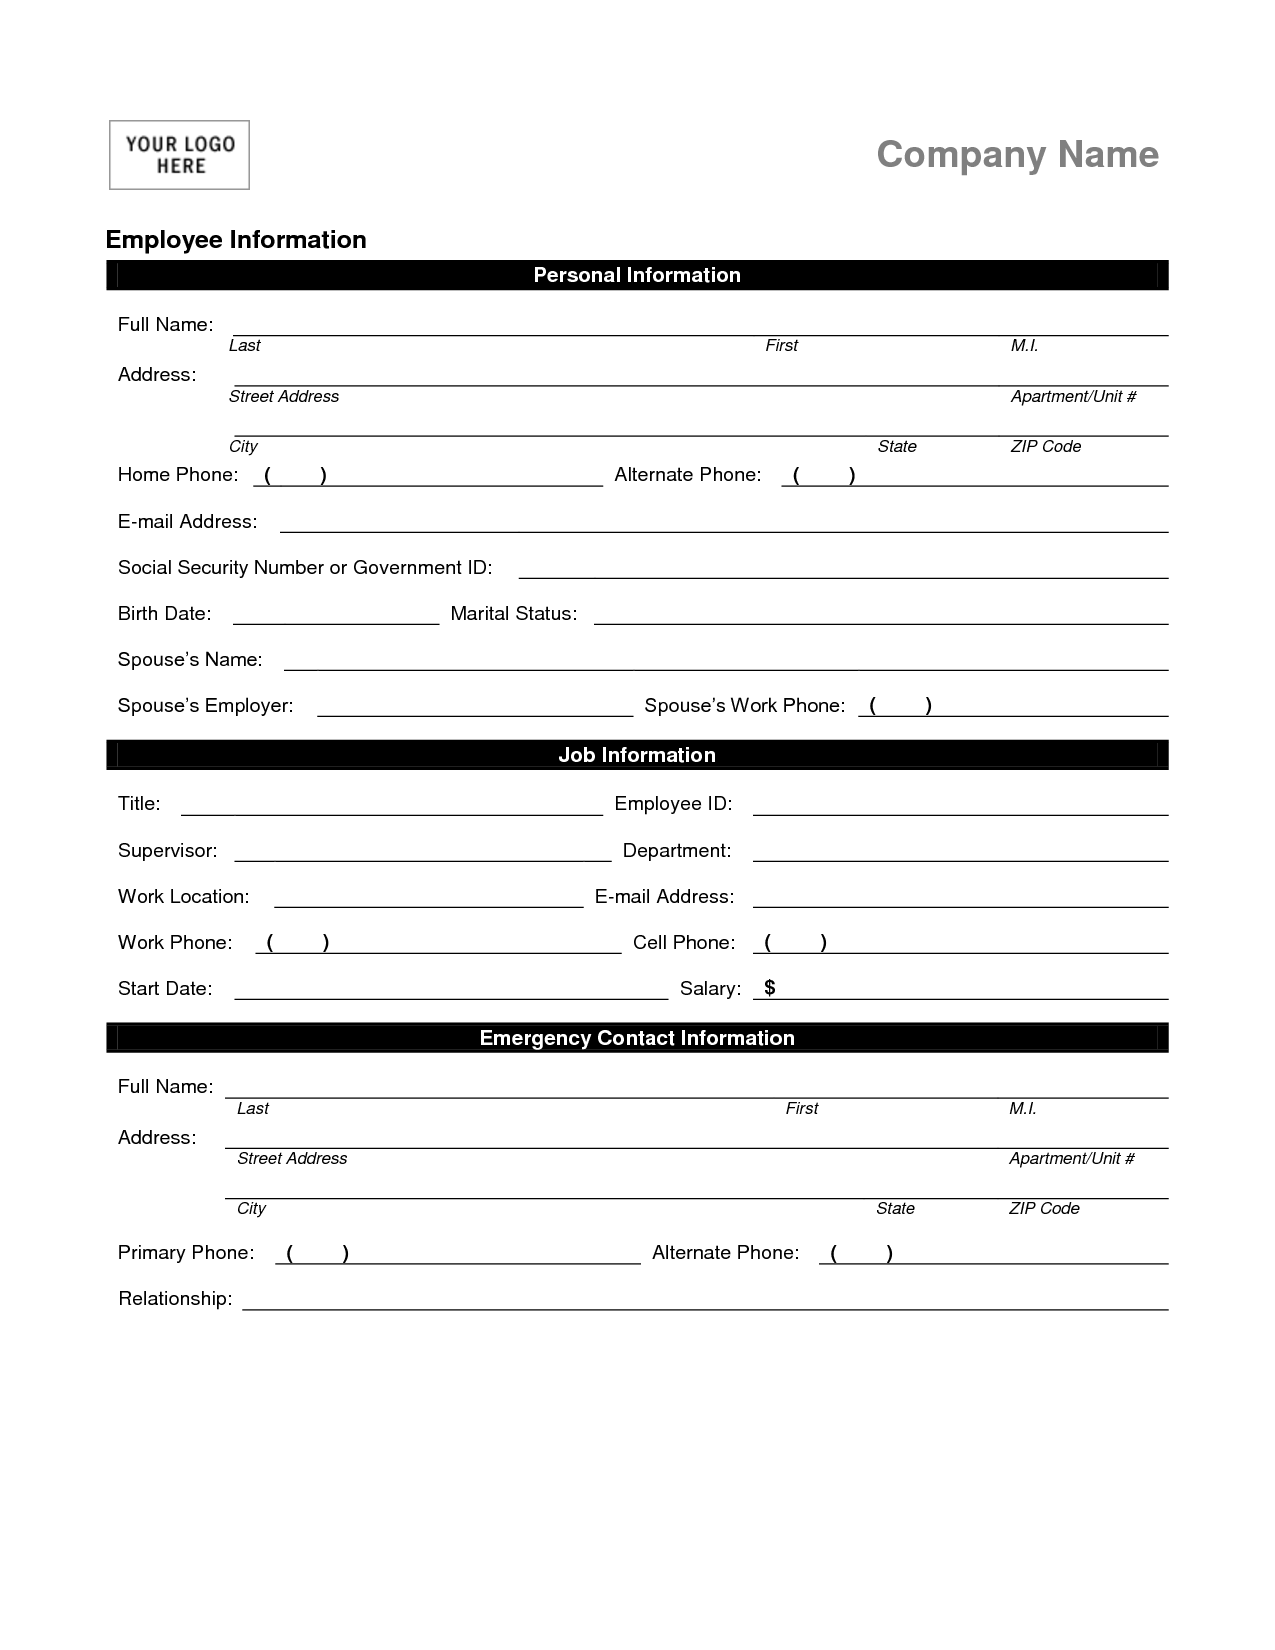 Employee Personal Information Form Template | Hardsell | Pinterest